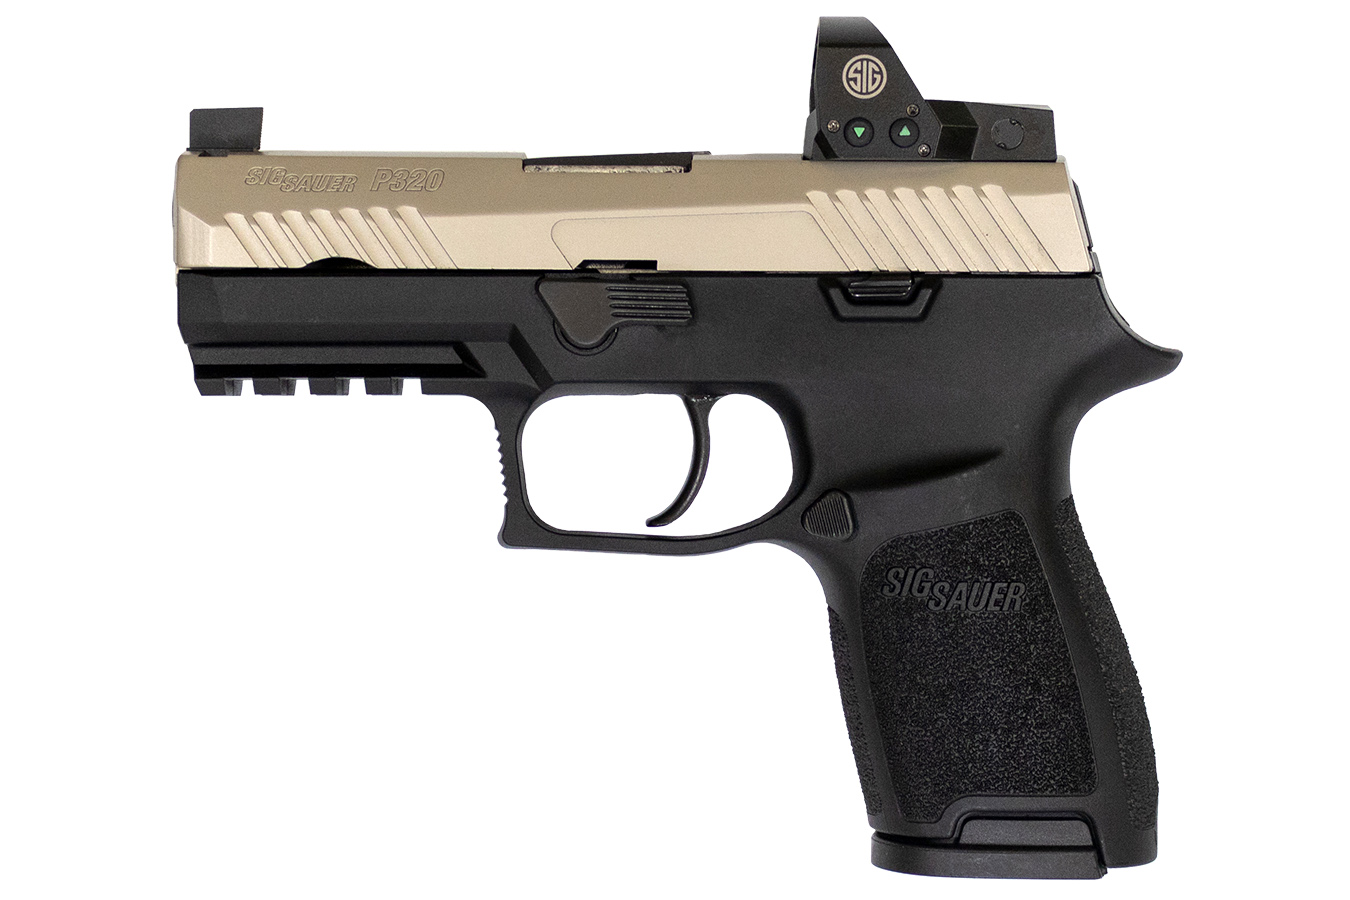 P320 Compact Two-Tone RX 9mm Pistol with ROMEO1 Reflex Sight and Nickel PVD  Slide